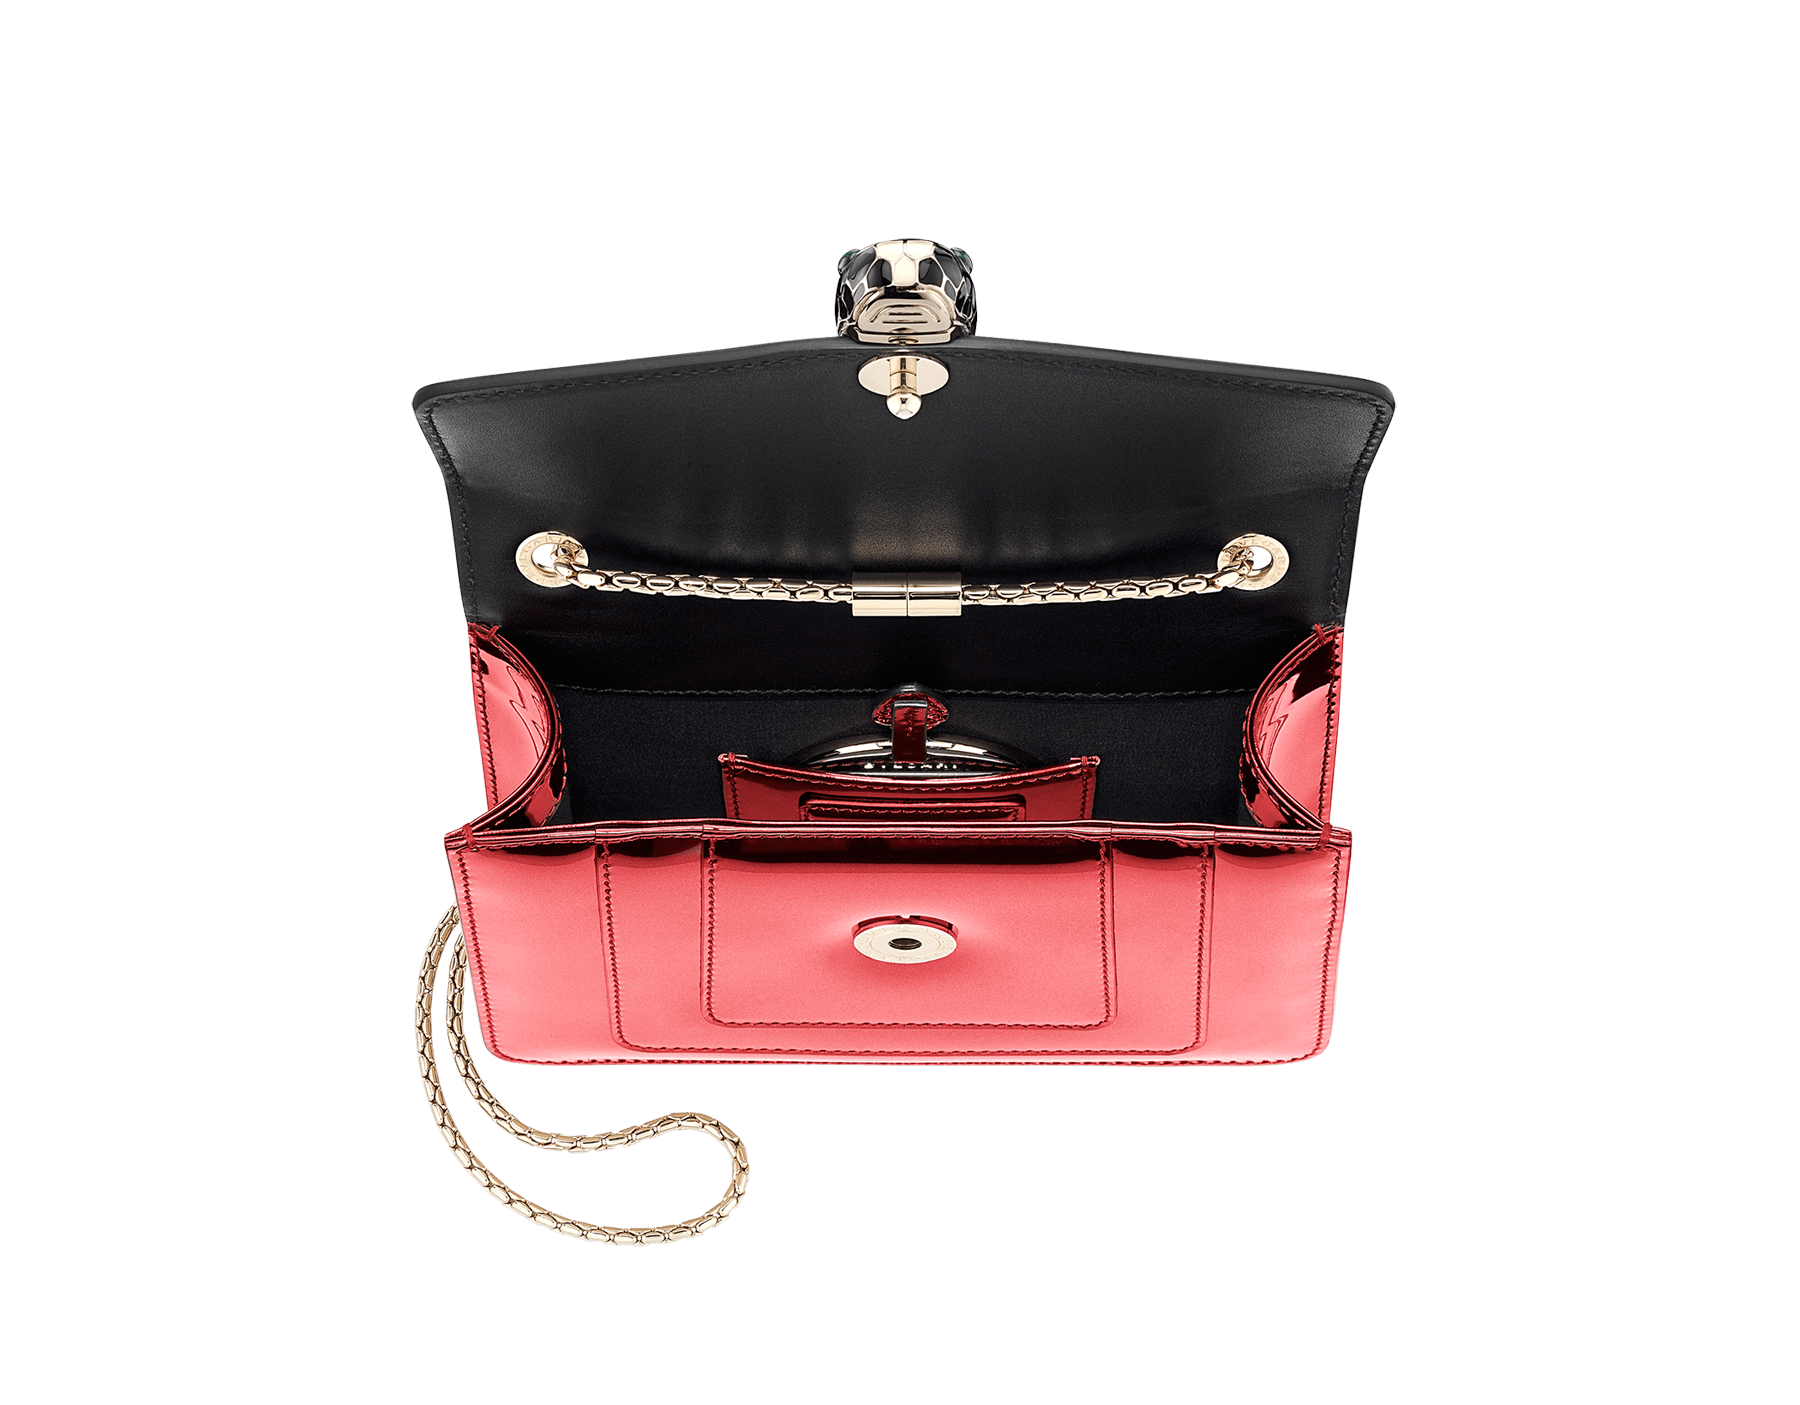 Flap cover bag Serpenti Forever in rose quartz brushed metallic calf leather. Brass light gold plated tempting snake head closure in black and white enamel, with eyes in green malachite. 422-BMCLb image 4